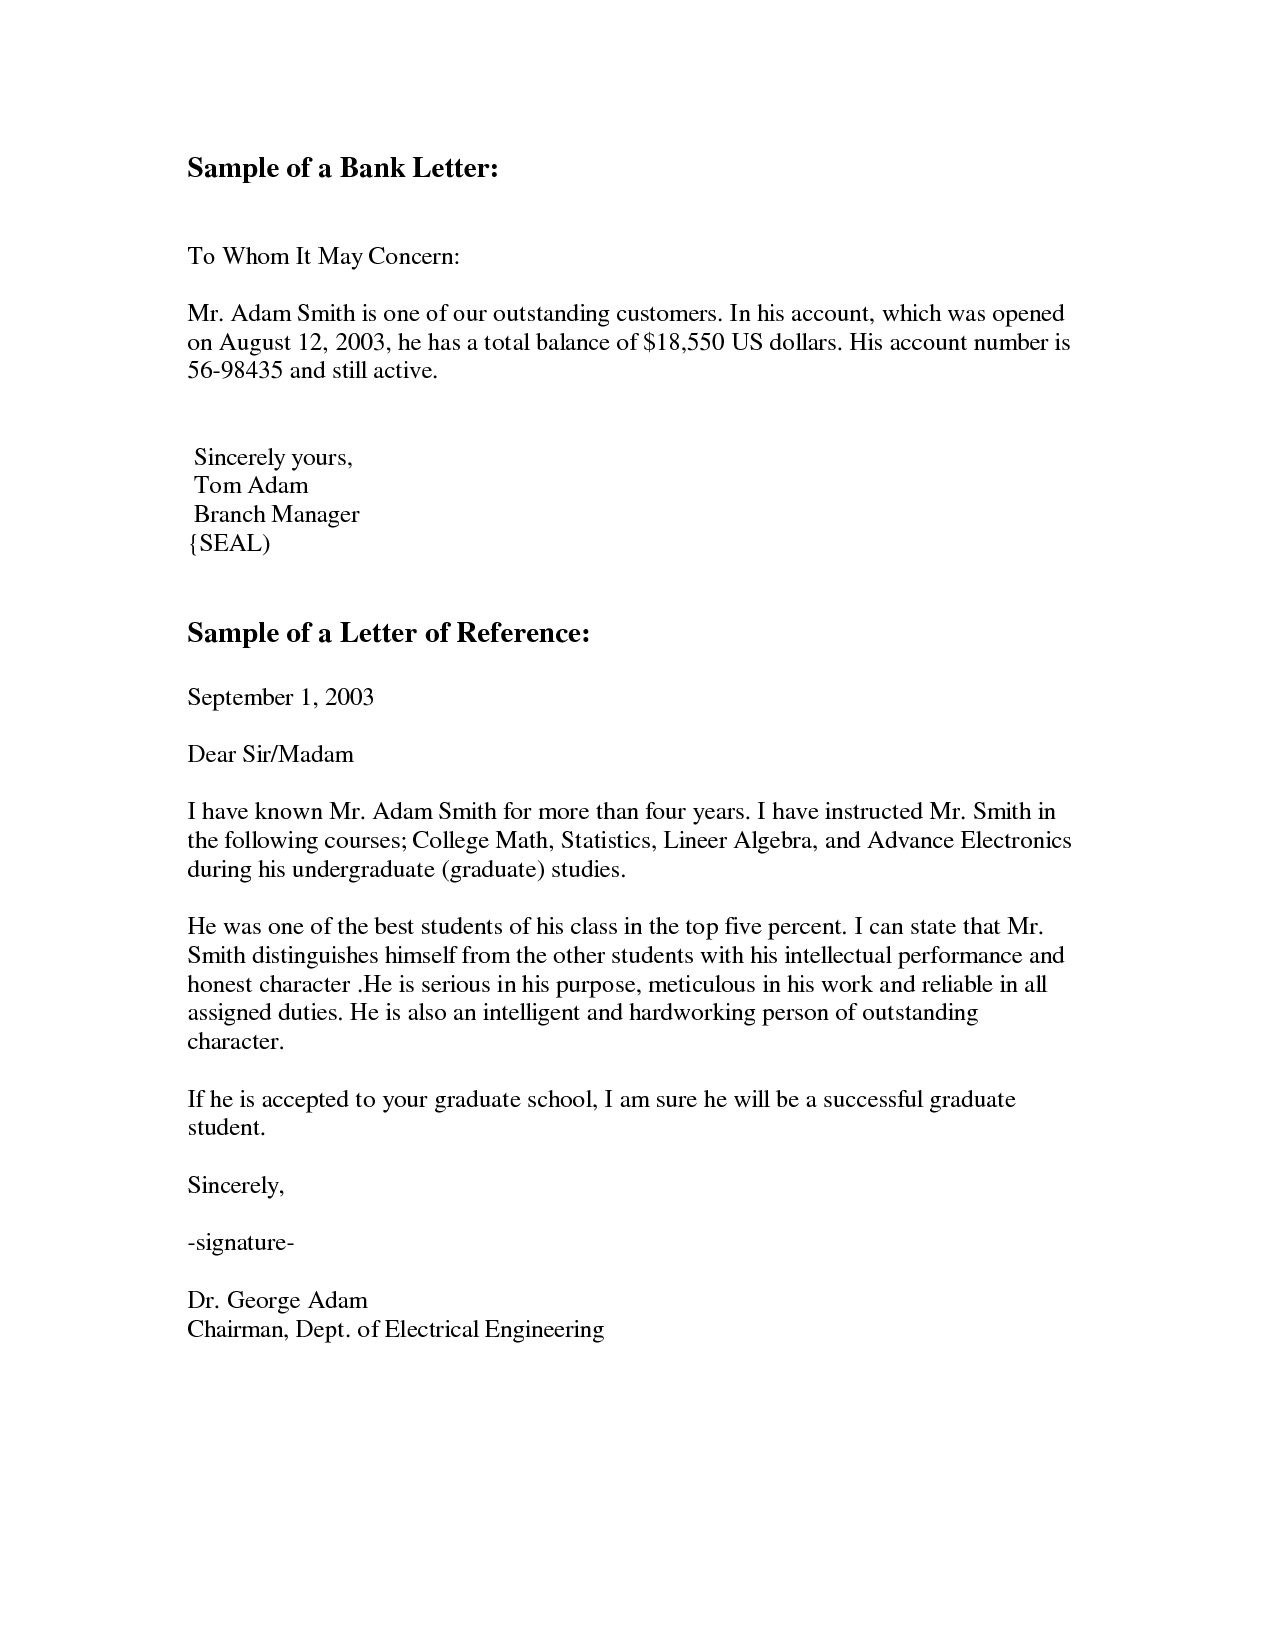 valentines letter template example-Formal Letter Template Samples 3-d